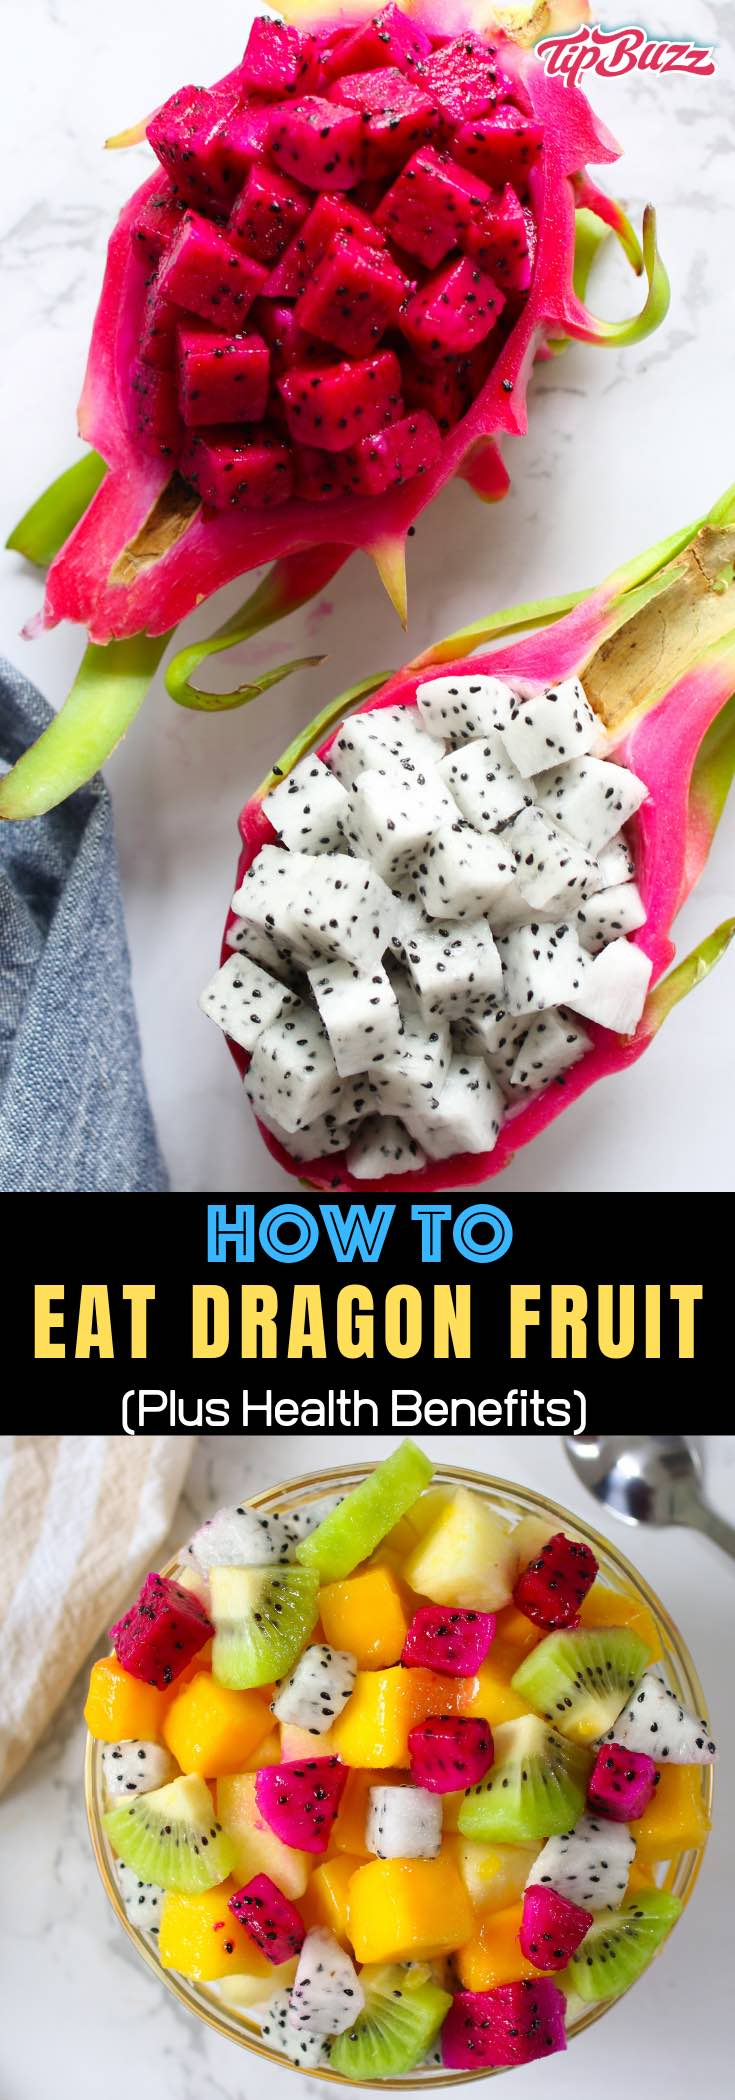 Dragon Fruit is a delicious tropical fruit with many health benefits. Learn how to cut dragon fruit easily and how to eat it whether you're making a smoothie, fruit salad or snack. #dragonfruit #reddragonfruit #whitedragonfruit